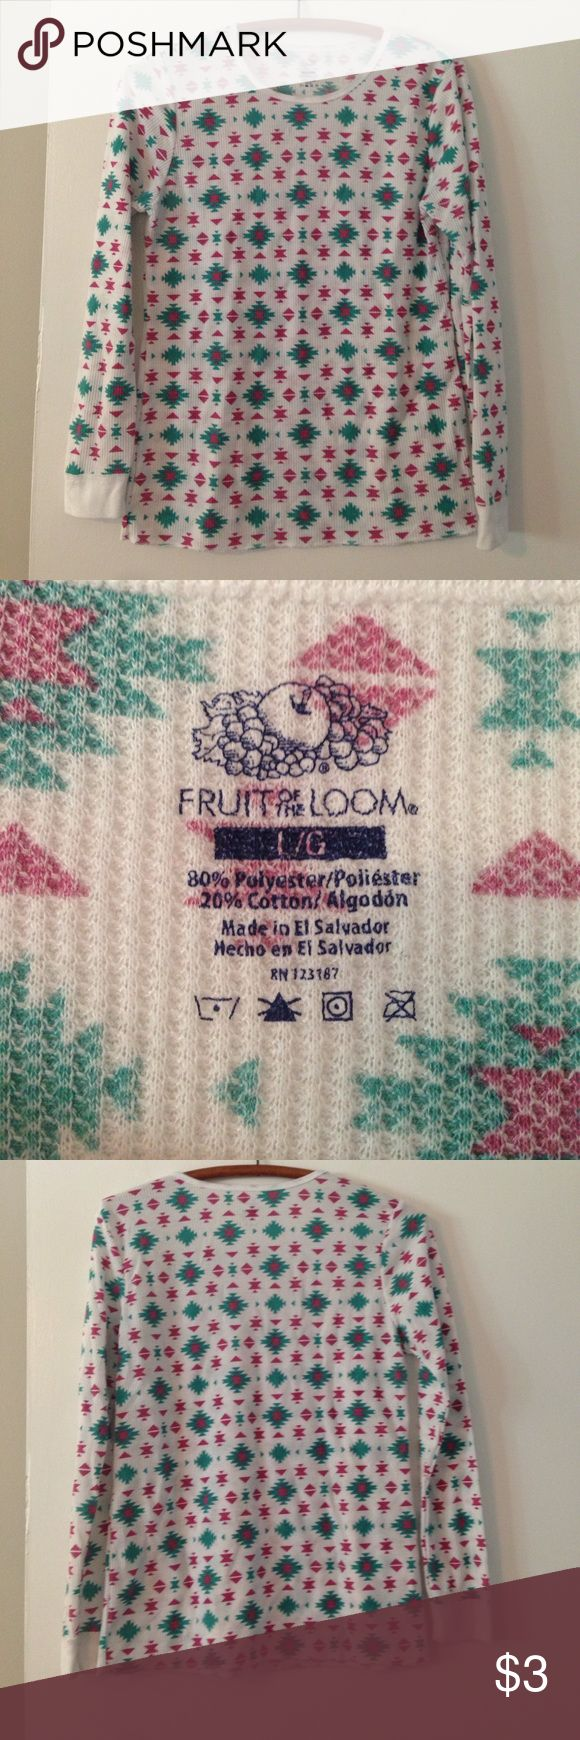 Patterned waffle knit shirt Long underwear undershirt, long sleeves with a pattern. Nice and soft. Best under tee shirts. Fruit of the Loom Tops Tees - Long Sleeve